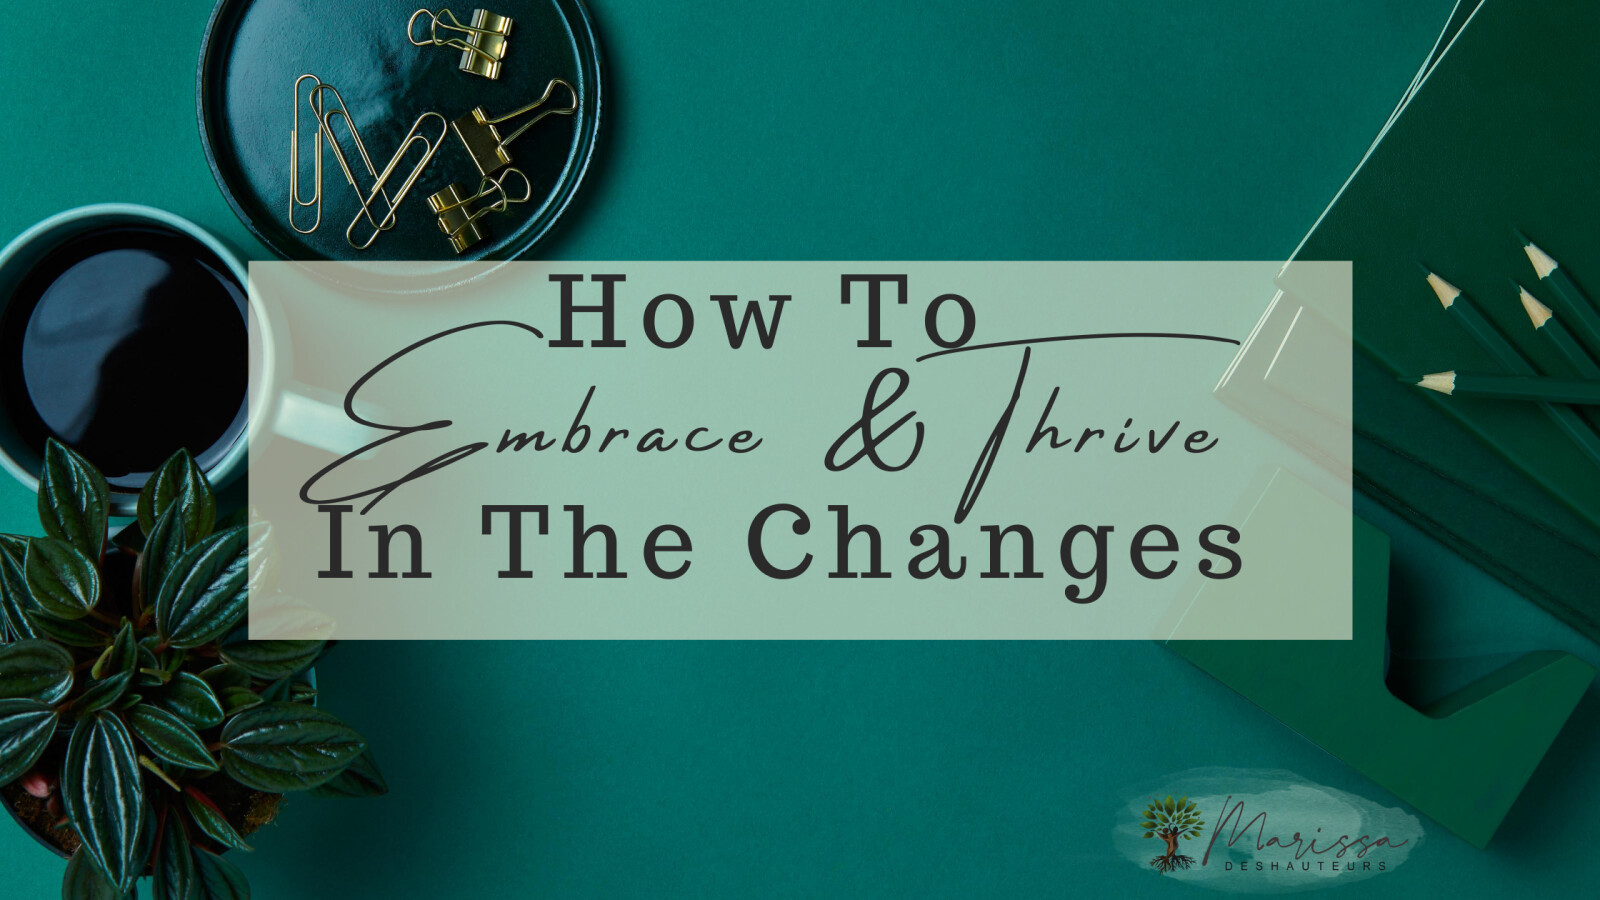 HOW TO EMBRACE & THRIVE IN THE CHANGES